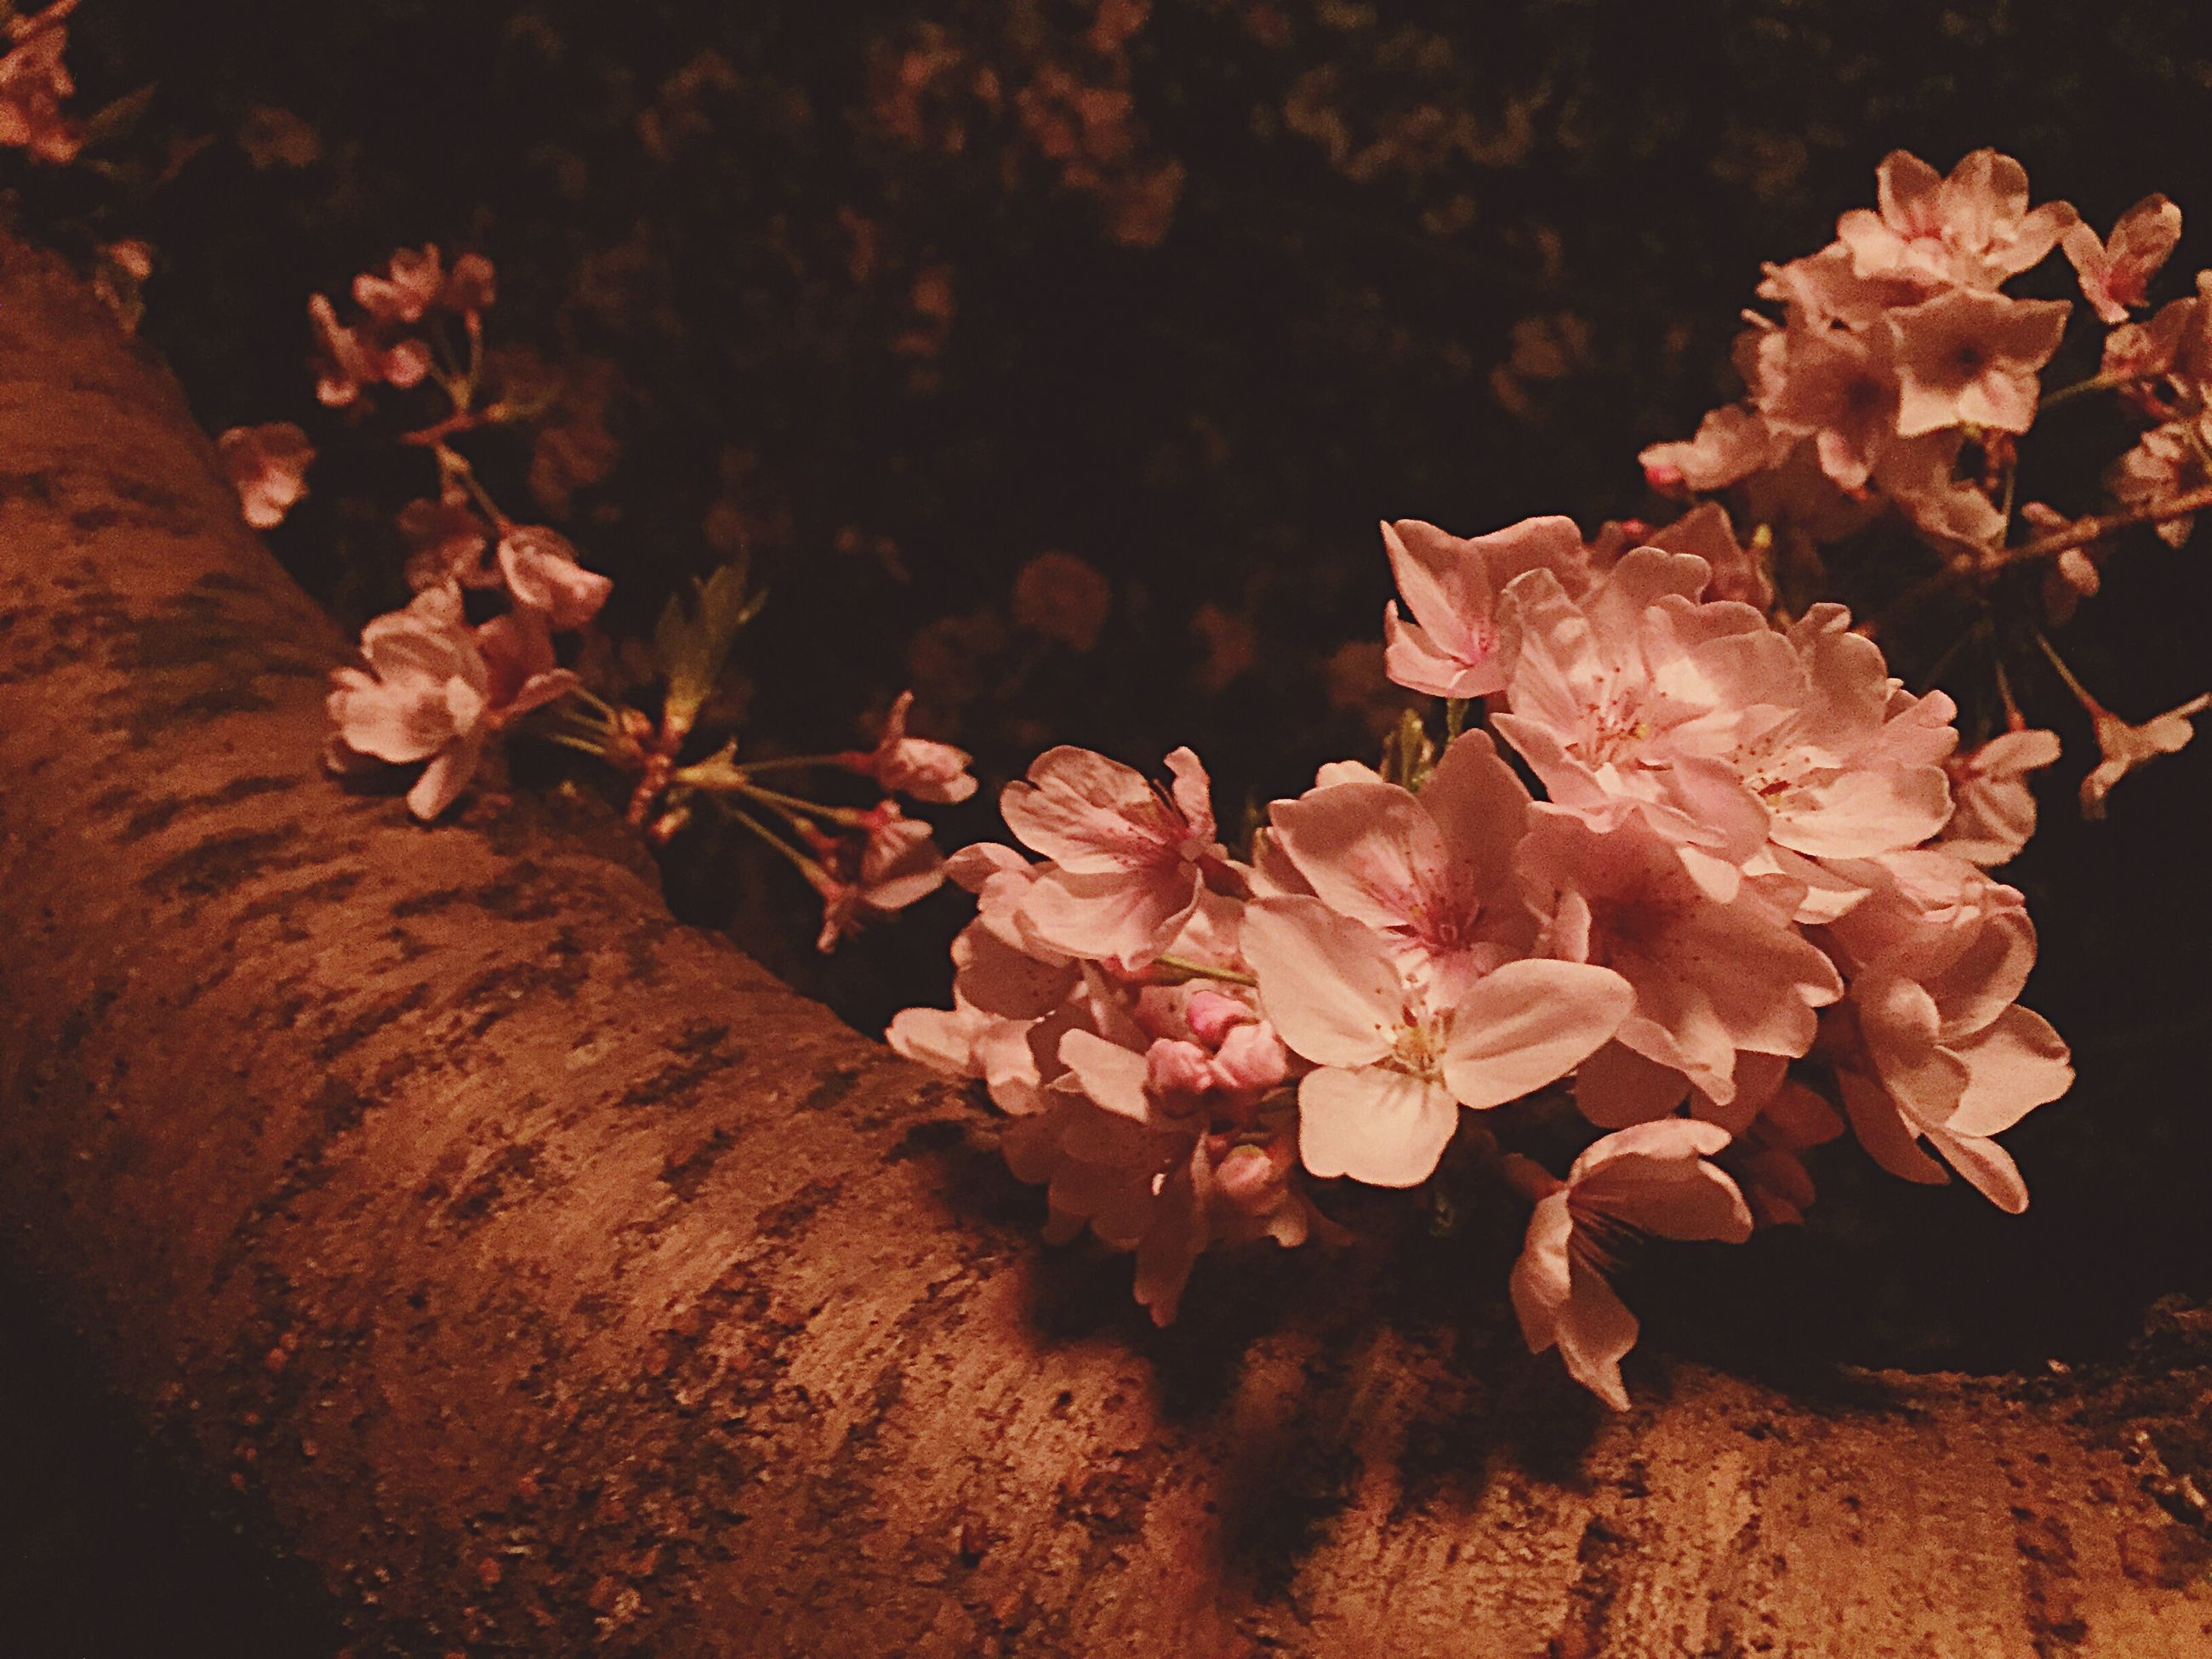 flower, fragility, petal, growth, freshness, nature, beauty in nature, plant, close-up, flower head, pink color, high angle view, leaf, wood - material, blooming, no people, botany, outdoors, sunlight, in bloom